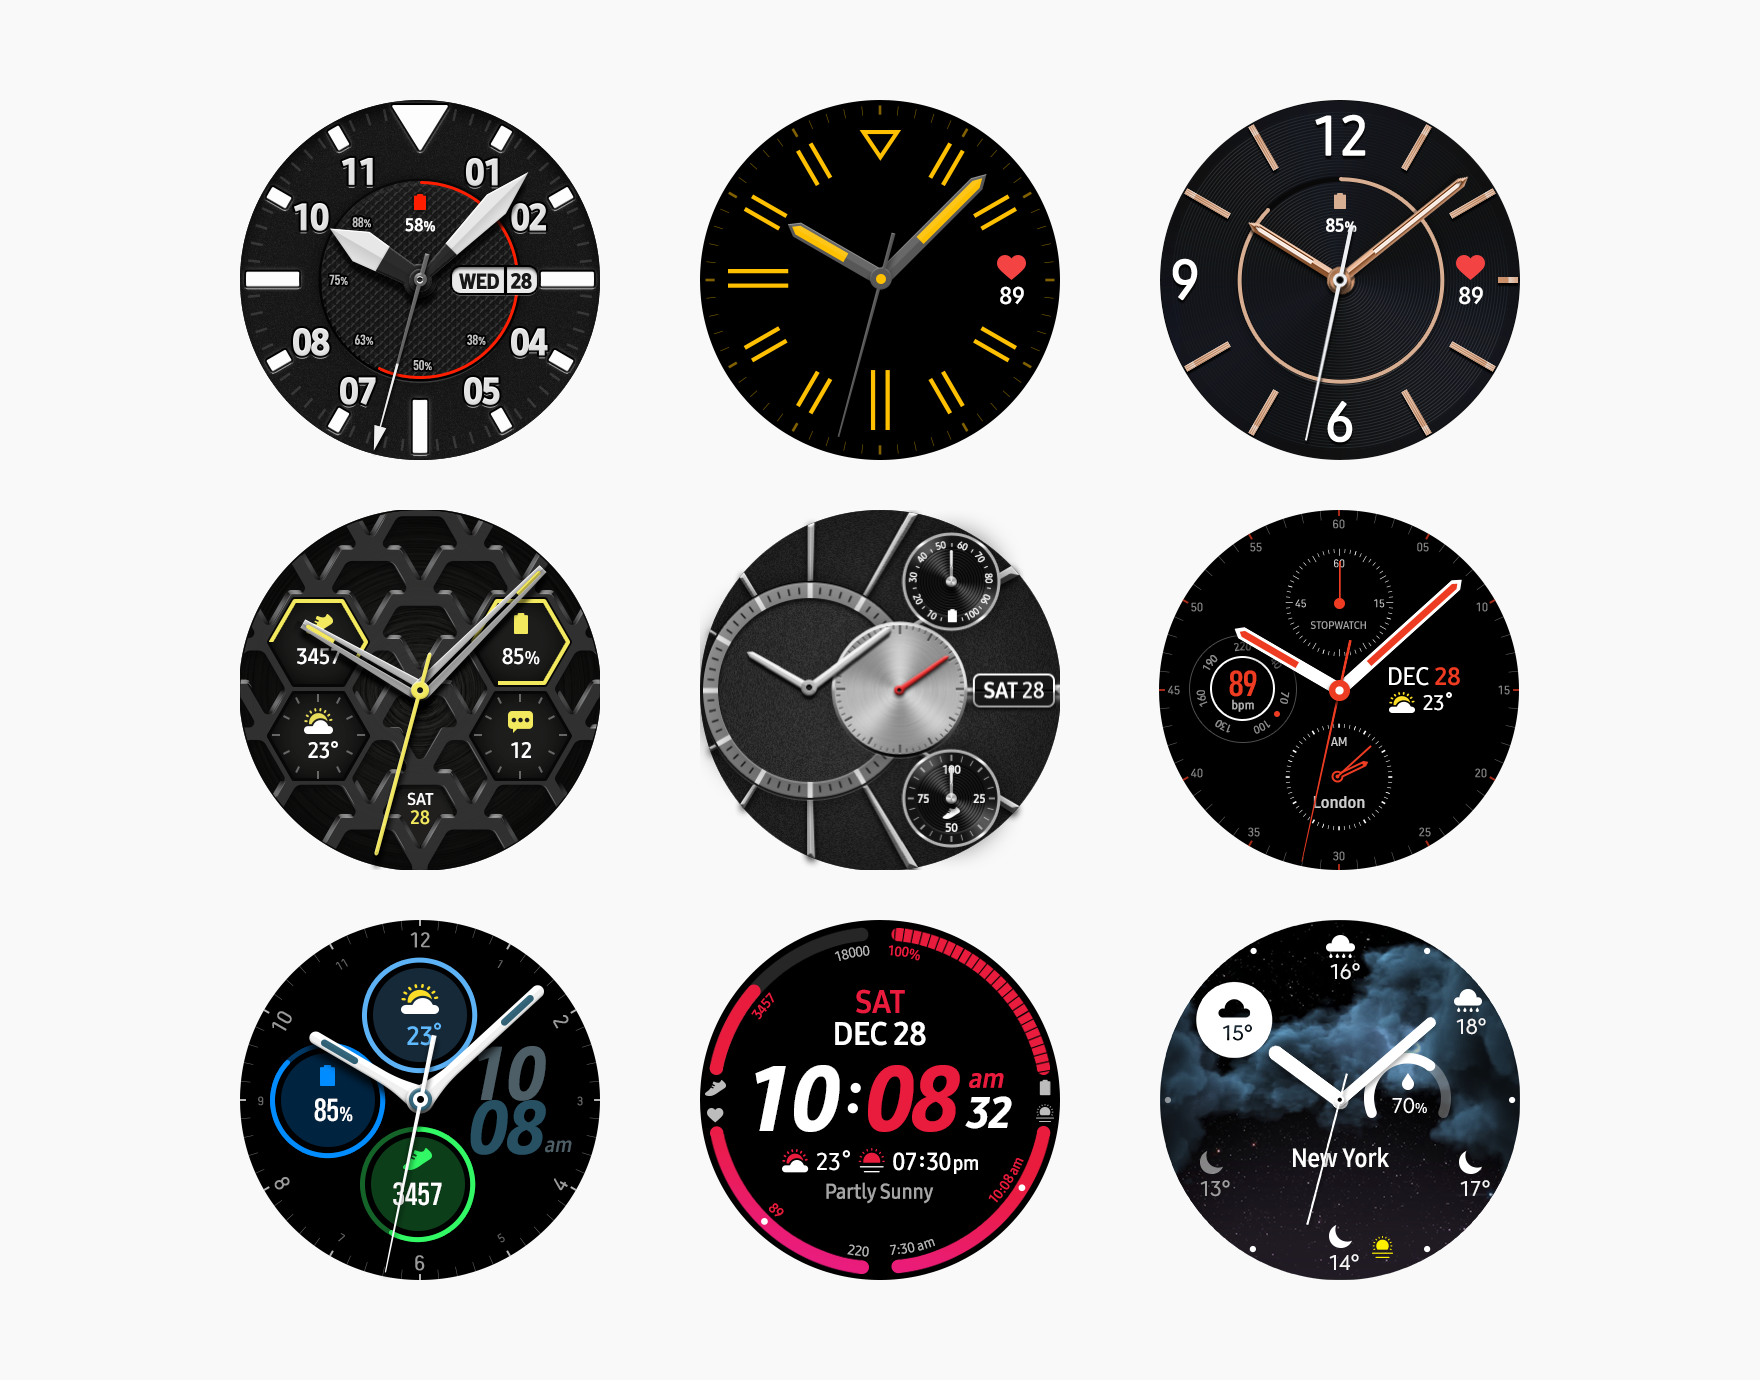 The watch face not only tells time but also provides useful functions and works as a fashion accessory.